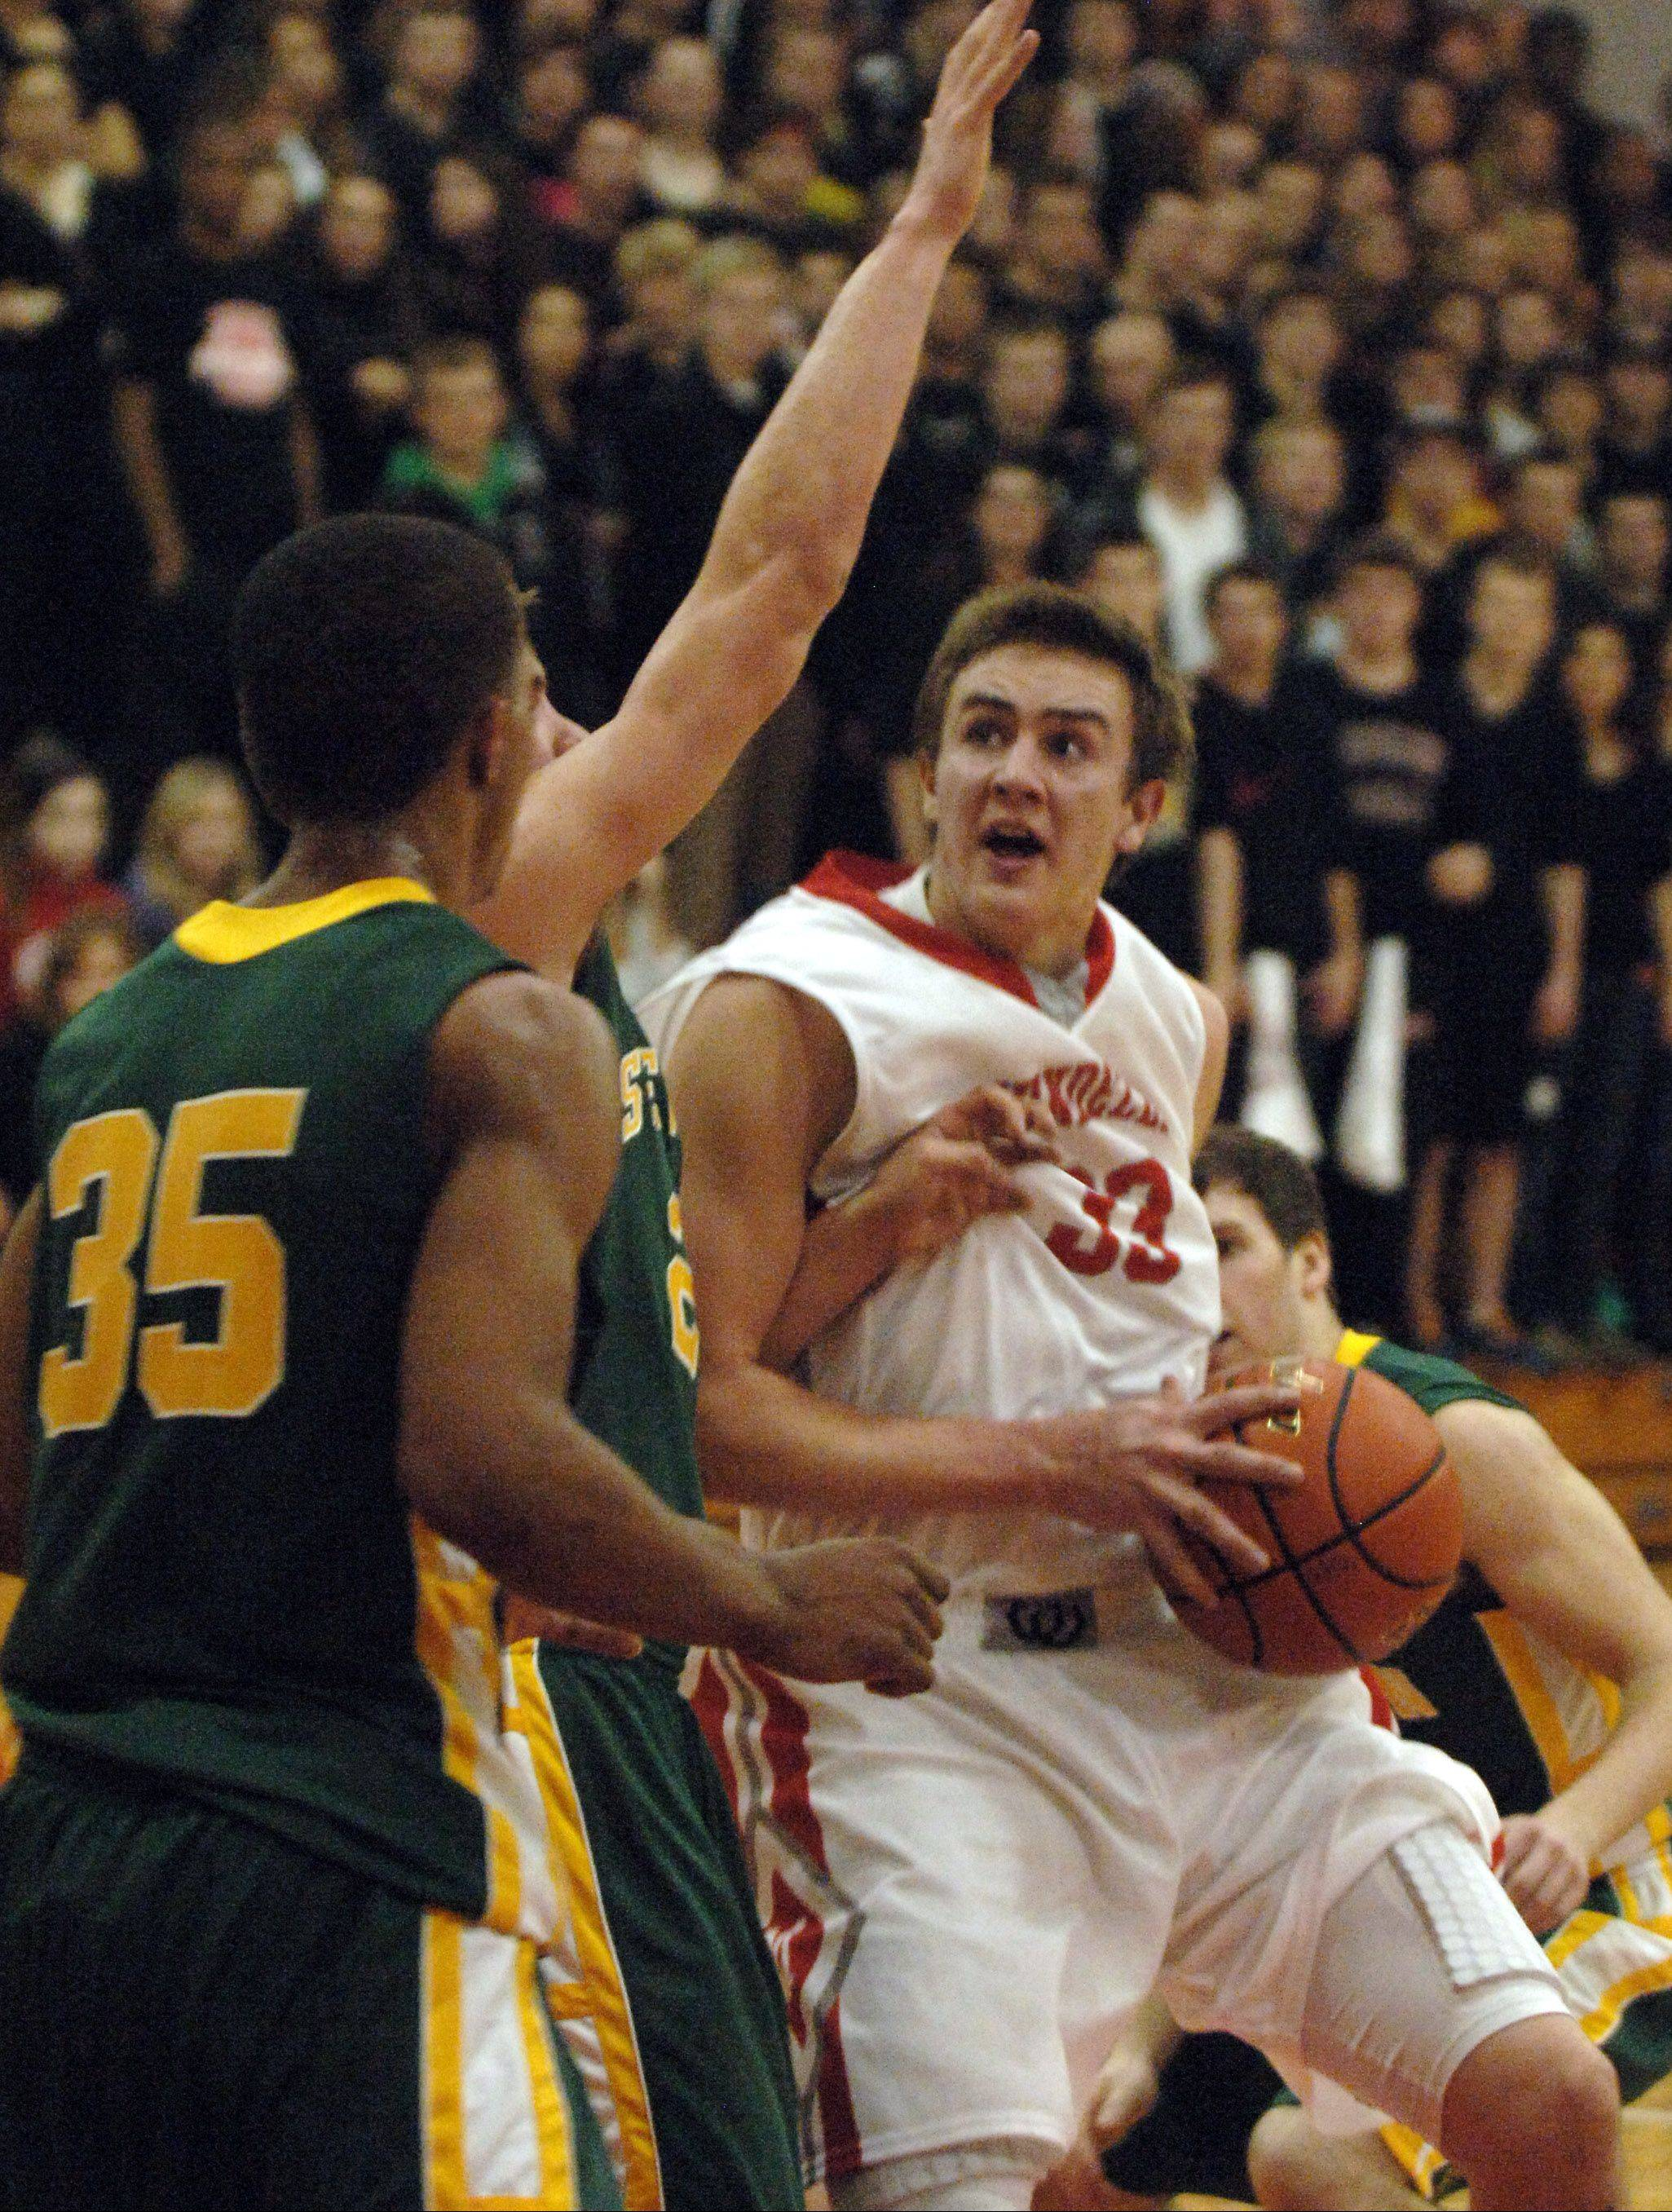 Mundelein's Sean O'Brien, right, heads to the basket under pressure from the Stevenson defense during Friday's game in Mundelein.